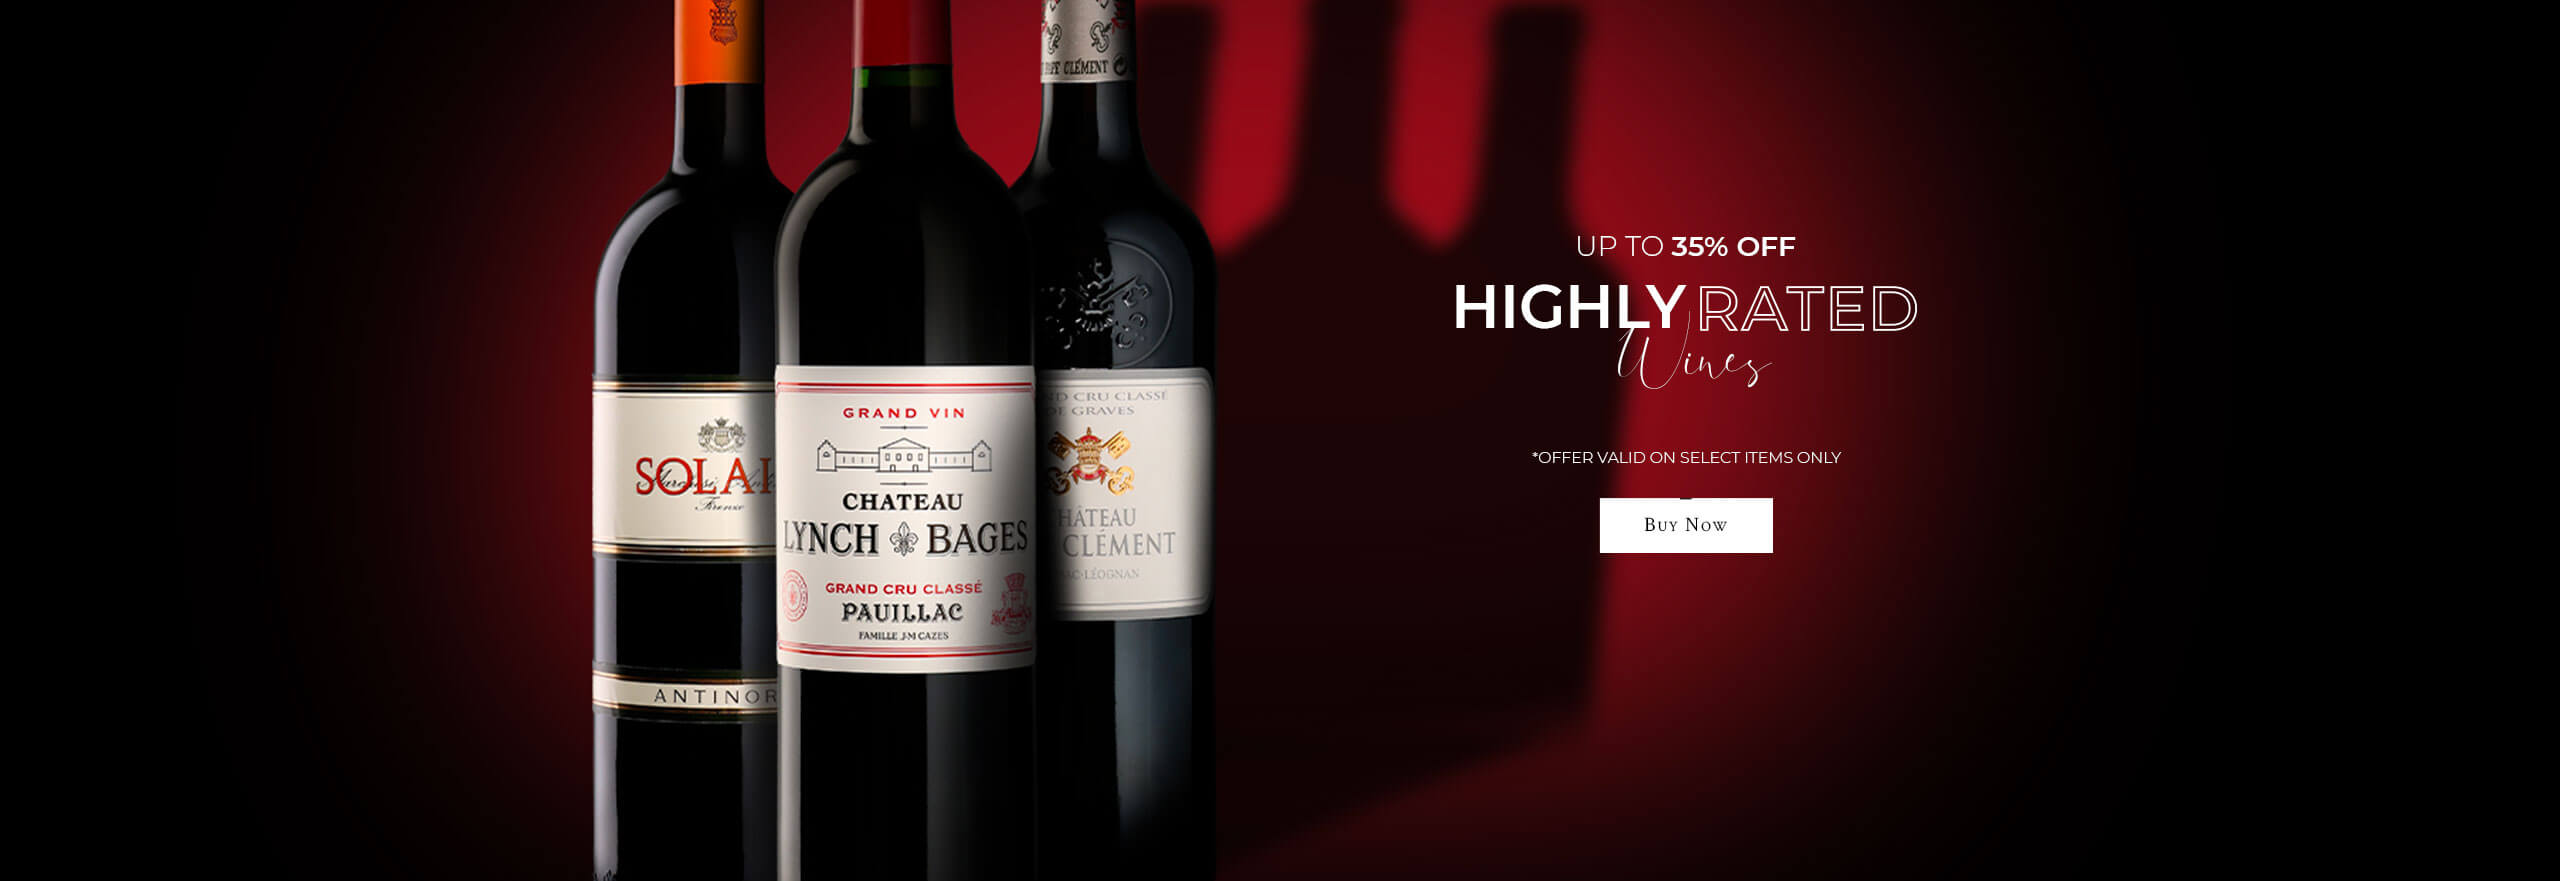 Highly rated wines on sale